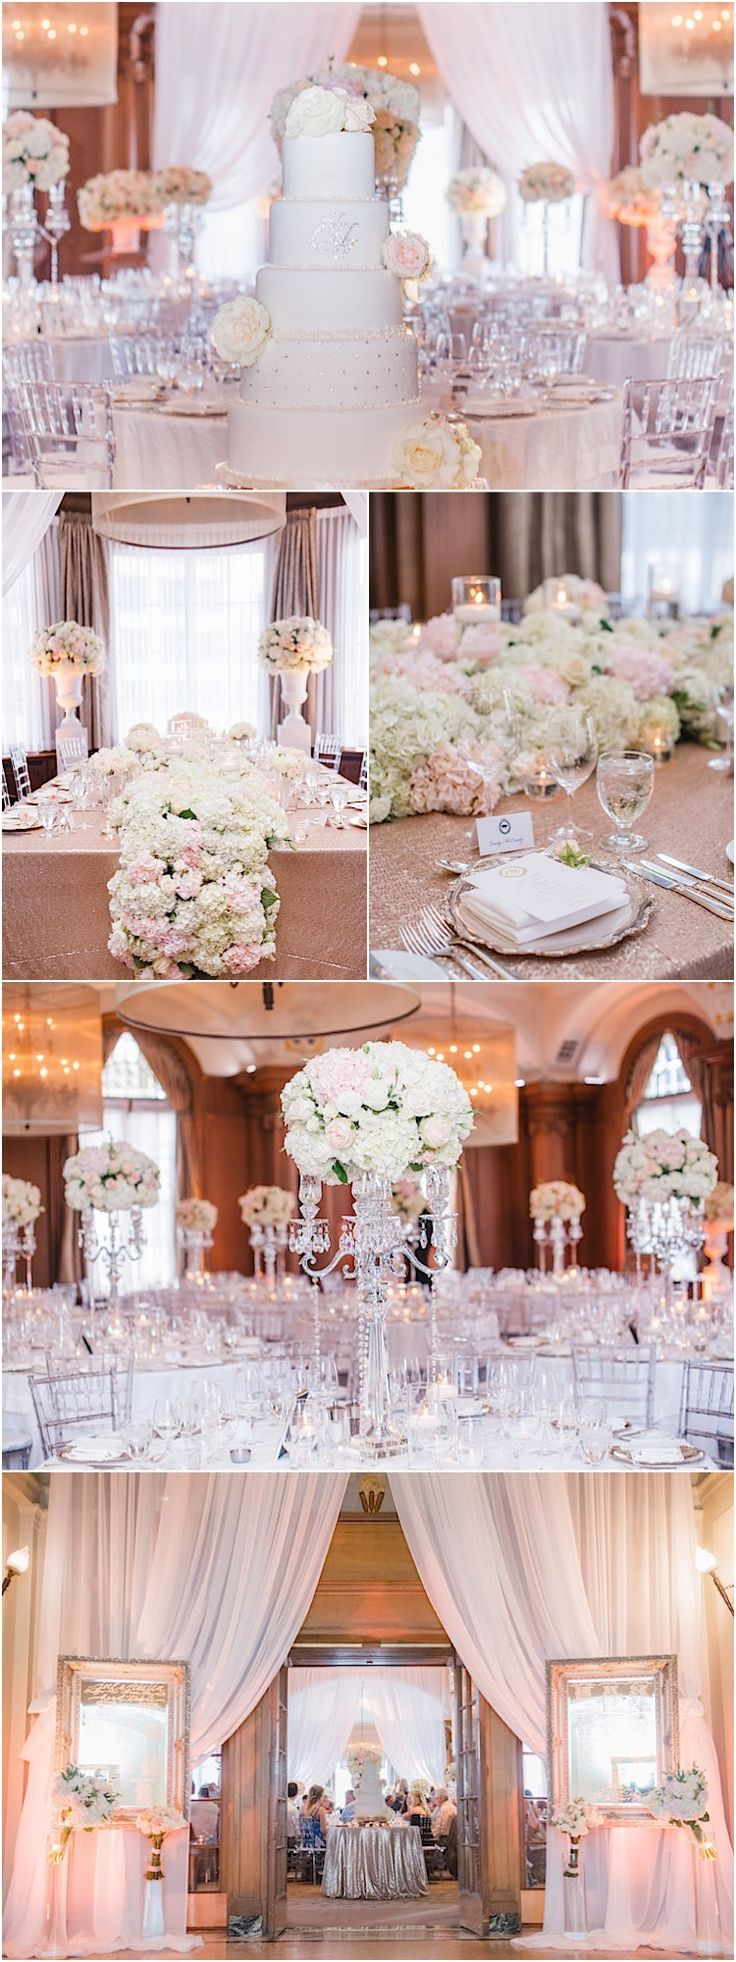 Glamorous wedding reception idea; Featured: Blush Wedding Photography                                                                                                                                                                                 More